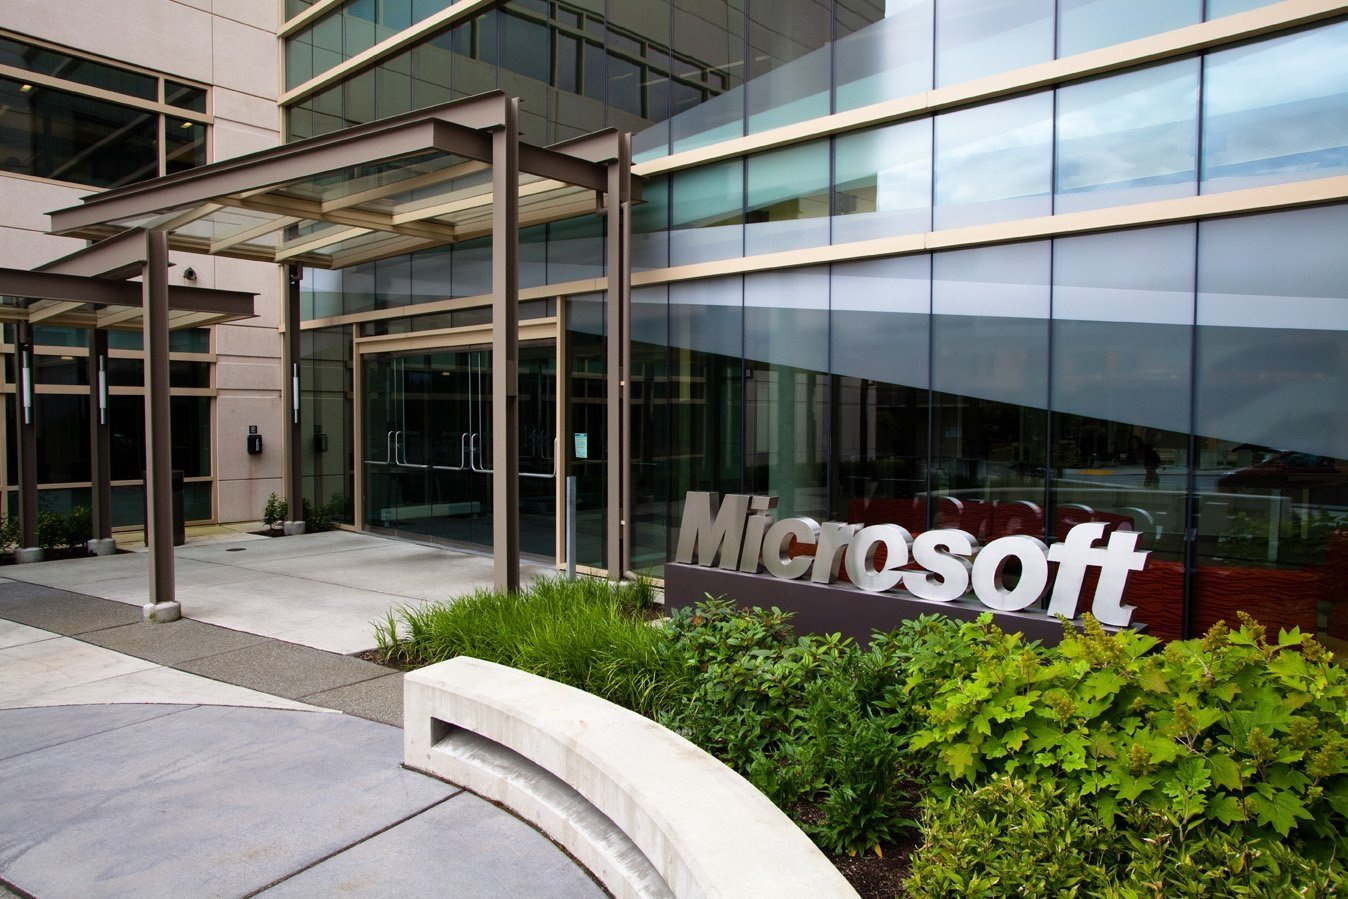 microsoft office in redmond. An Image Of The Microsoft Campus In Redmond, Washington. Office Redmond I